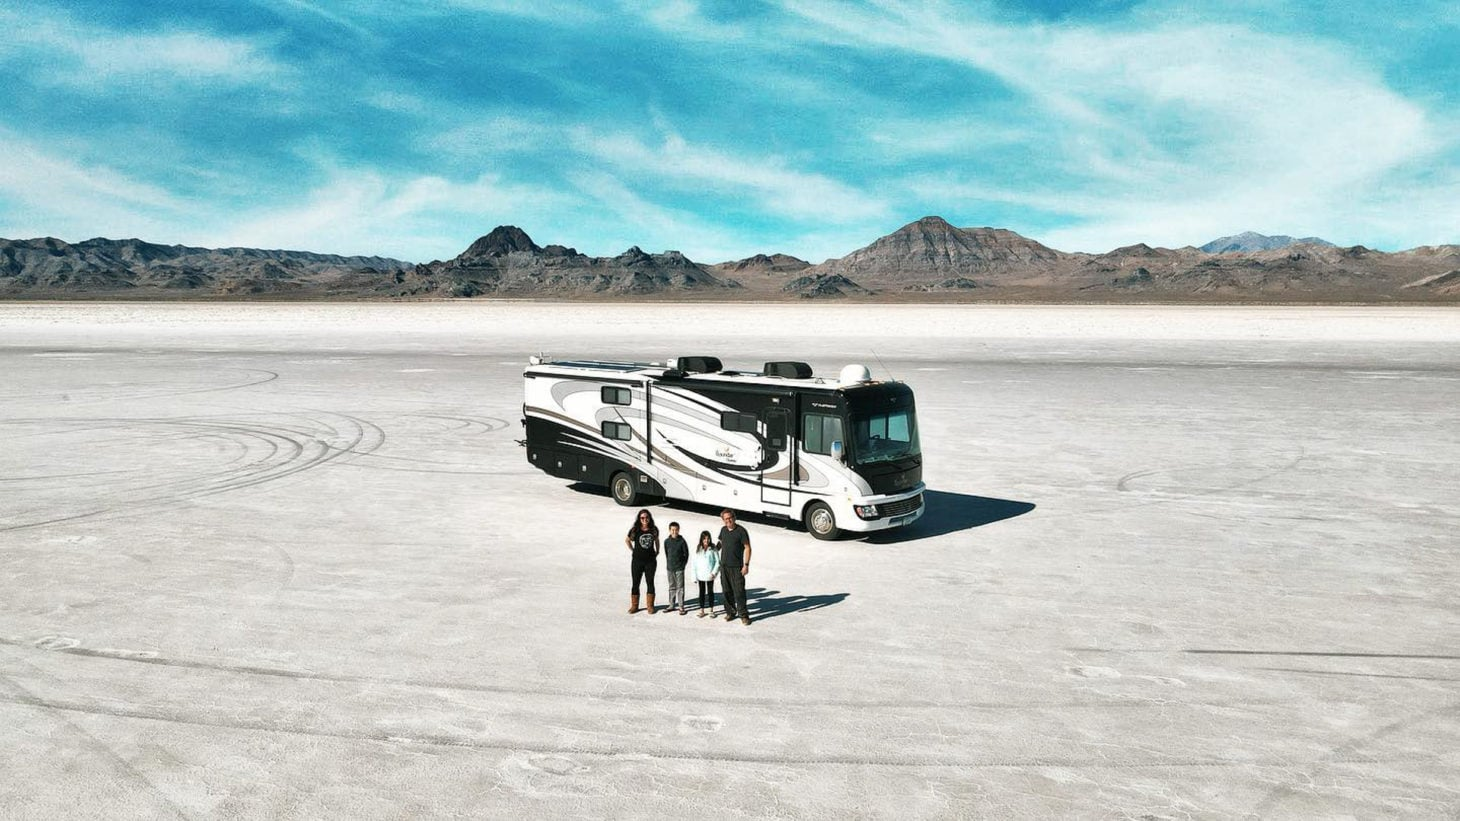 Aerial view of RV parked on salt flats with family posing in front